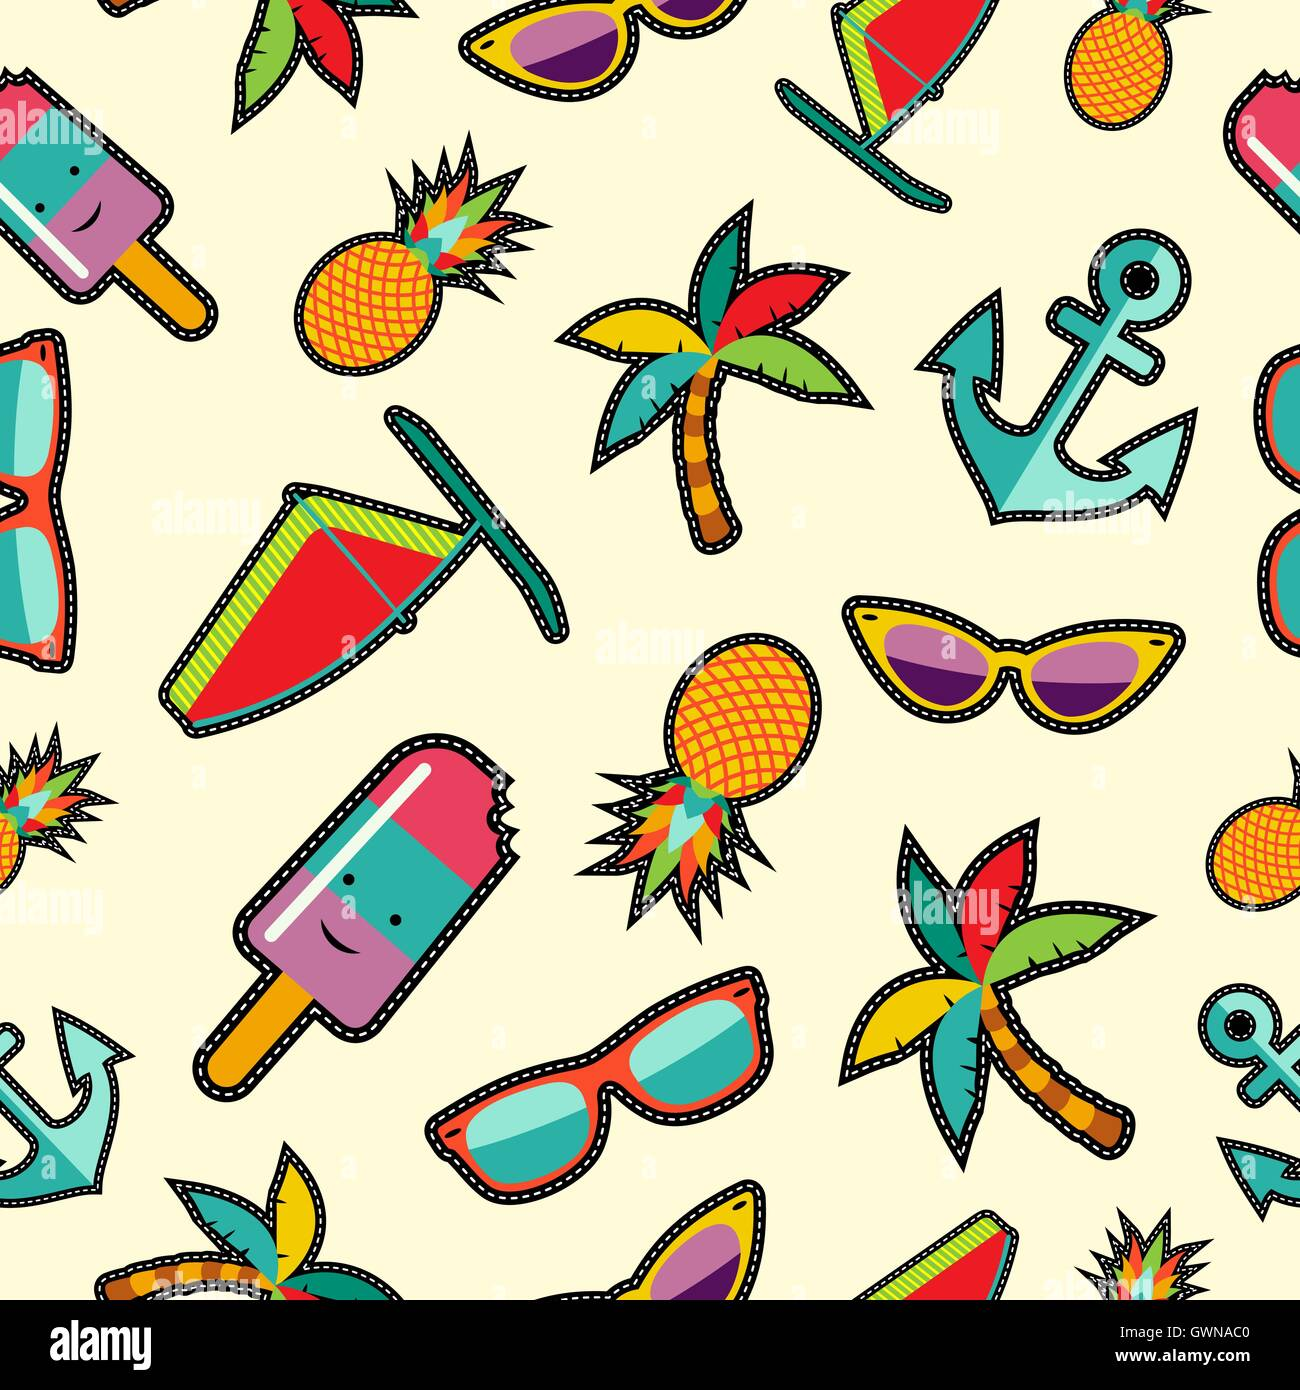 Vector Vintage Pop Art Beach Holiday Illustration Stock: Summer Background With Colorful Beach Elements In Pop Art